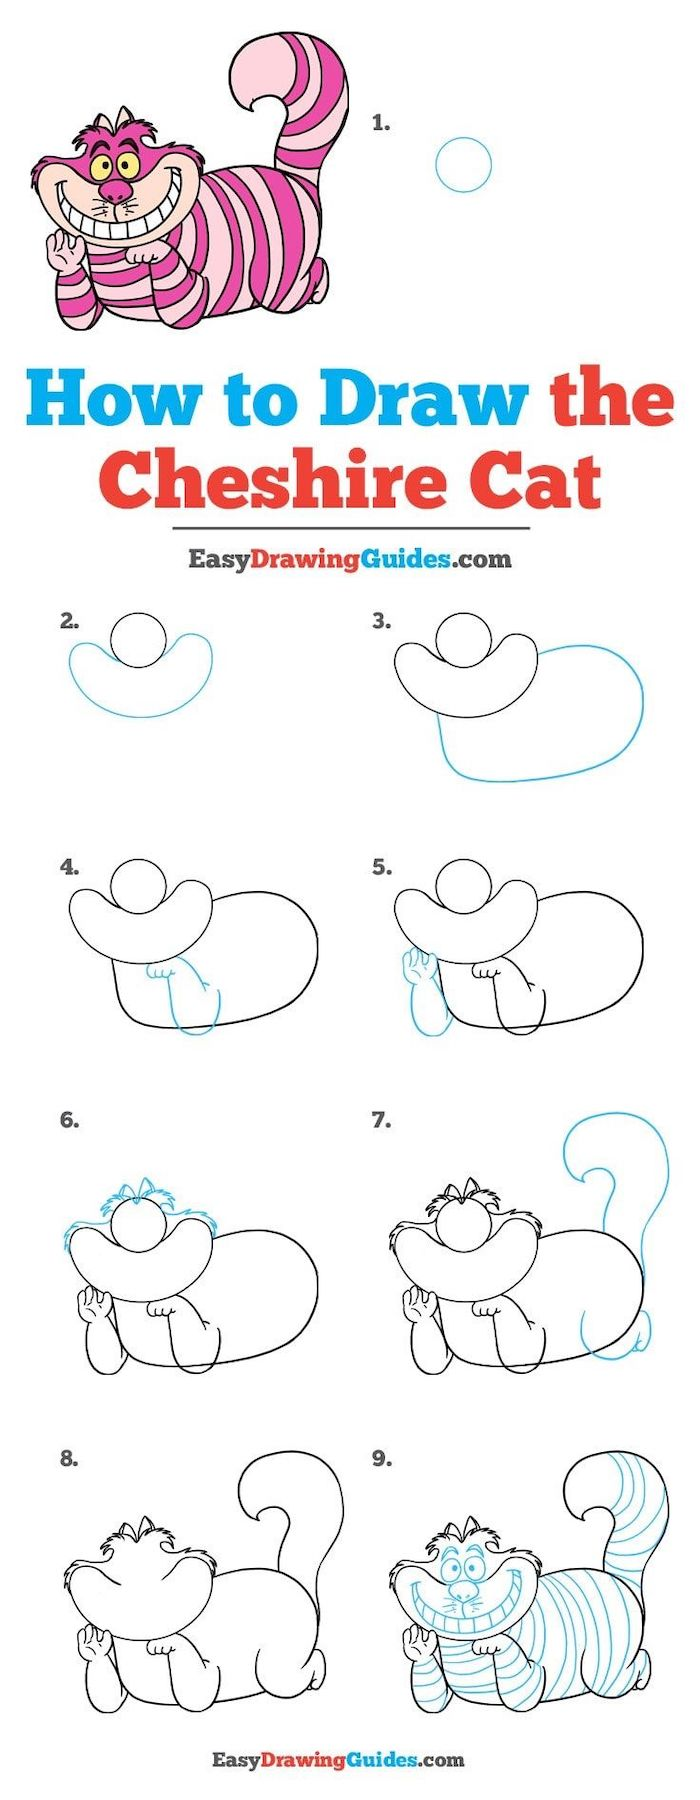 how to draw the cheshire cat in nine steps, cute drawings for kids, step by step diy tutorial, white background